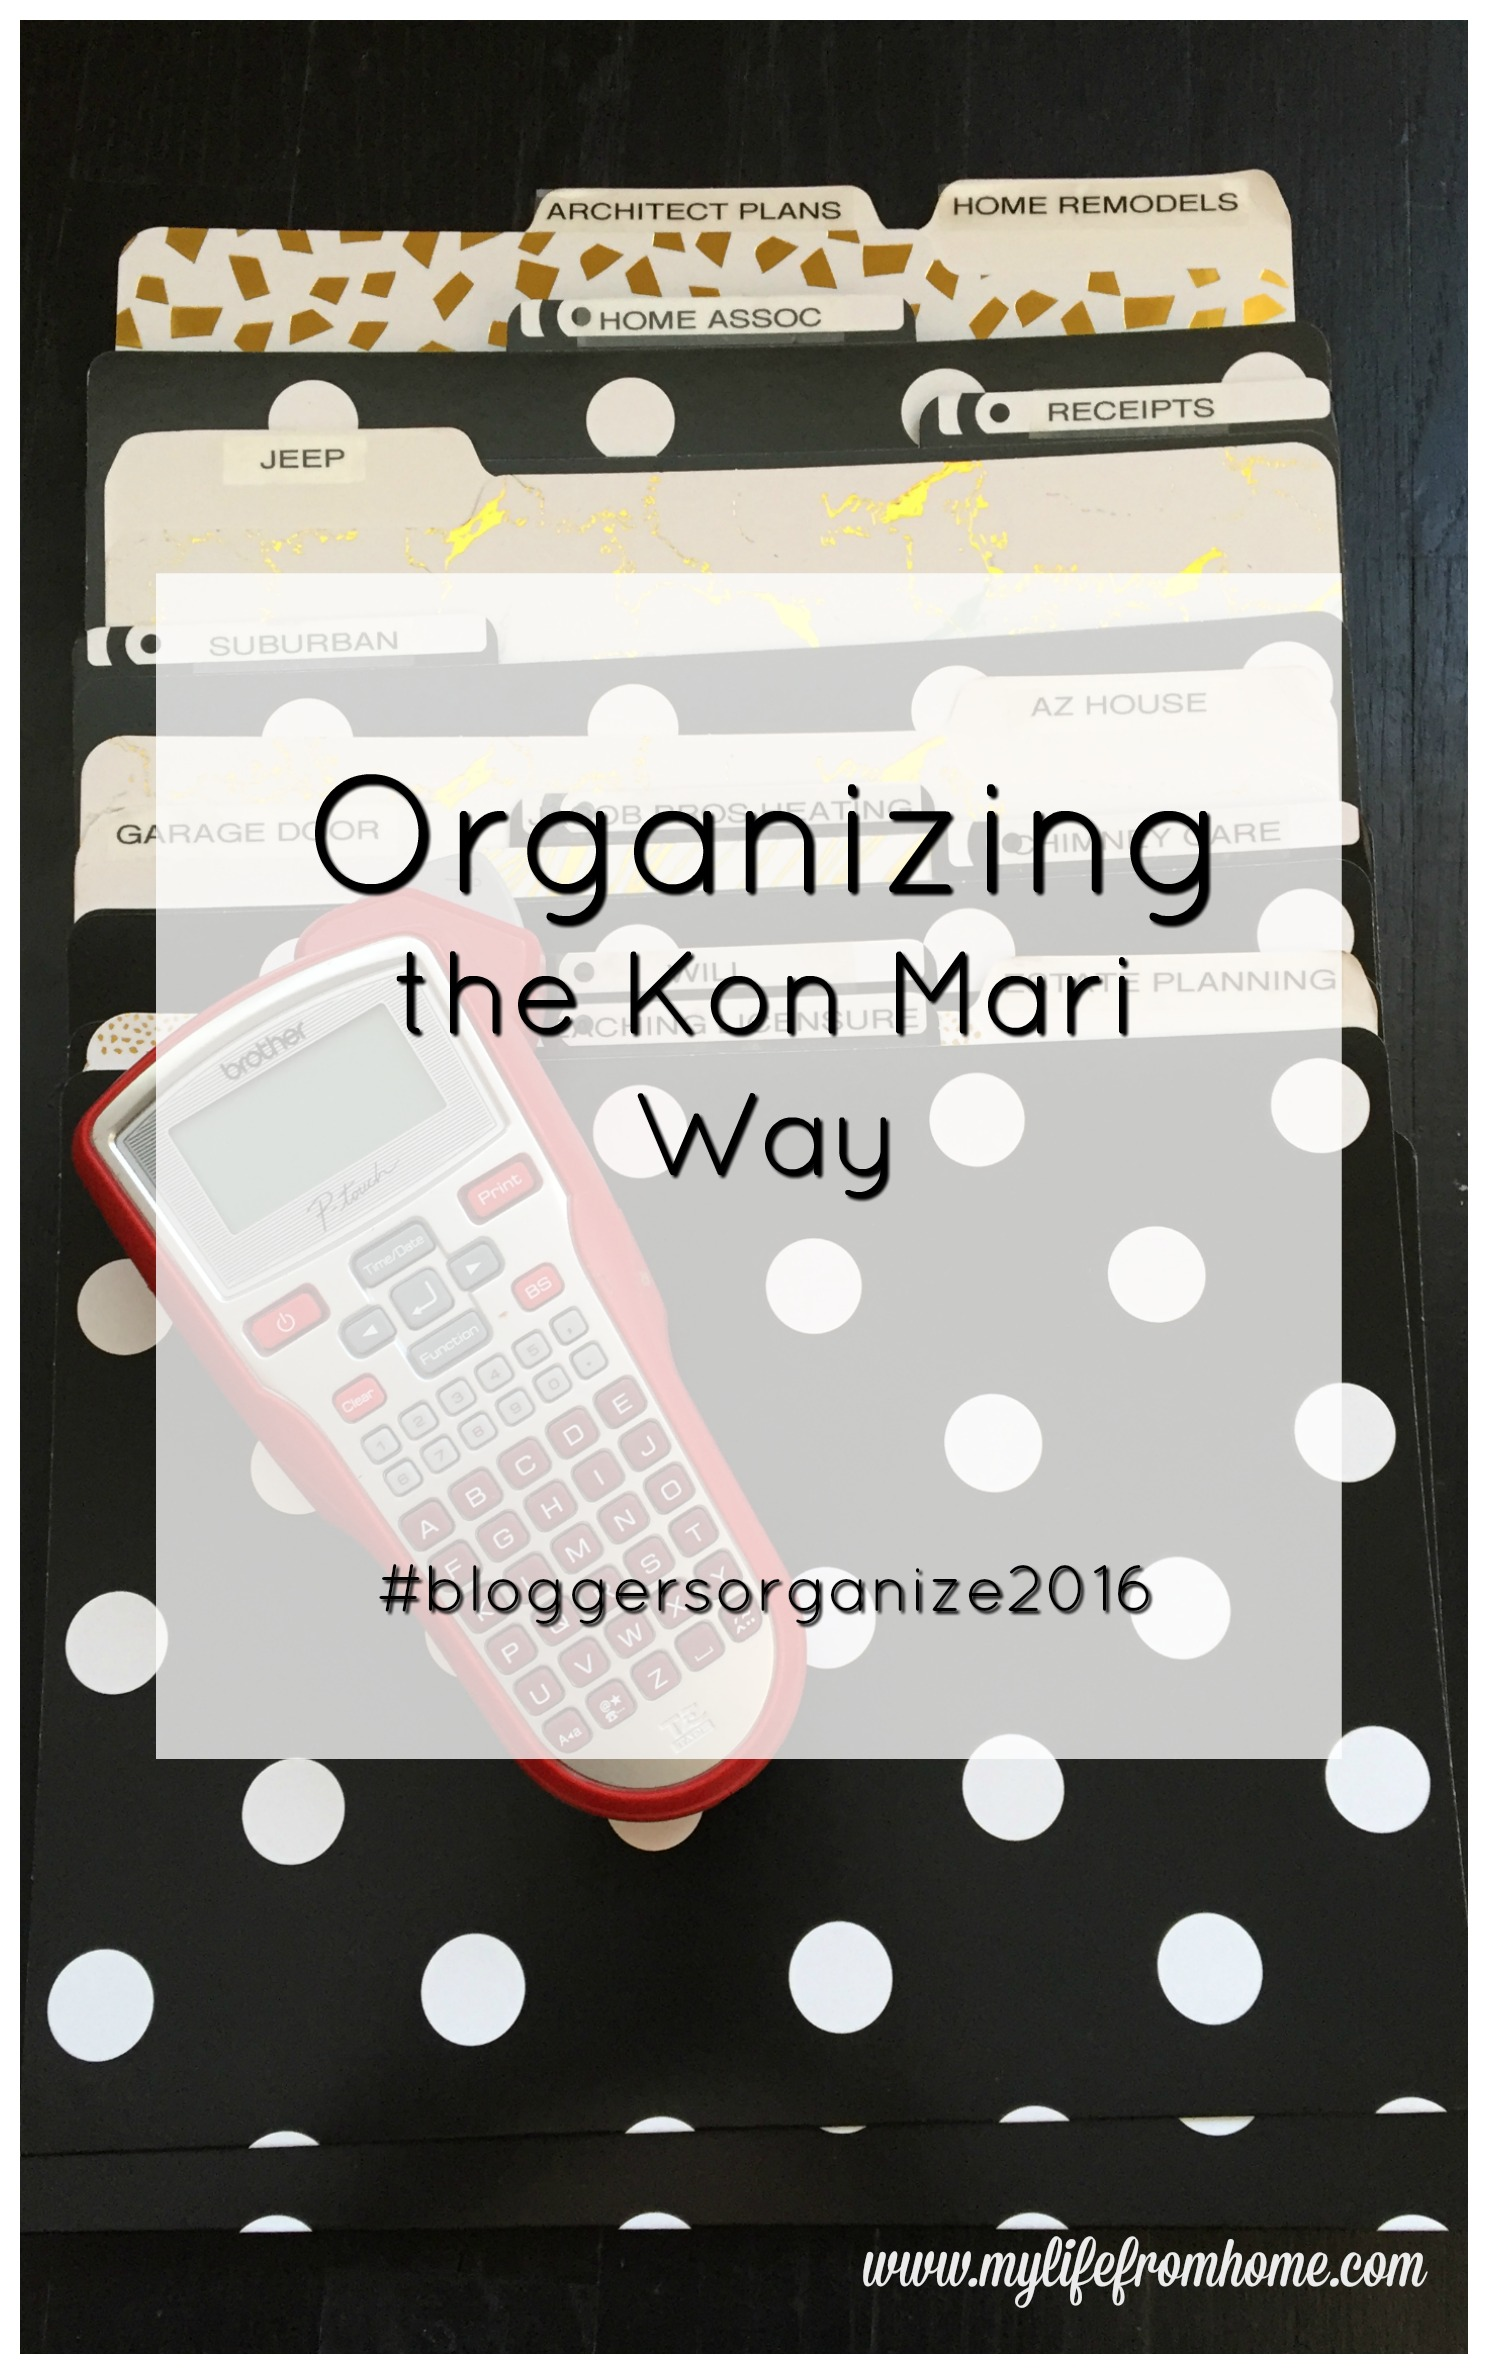 Organizing the Kon Mari Way Paperwork by www.mylifefromhome.com